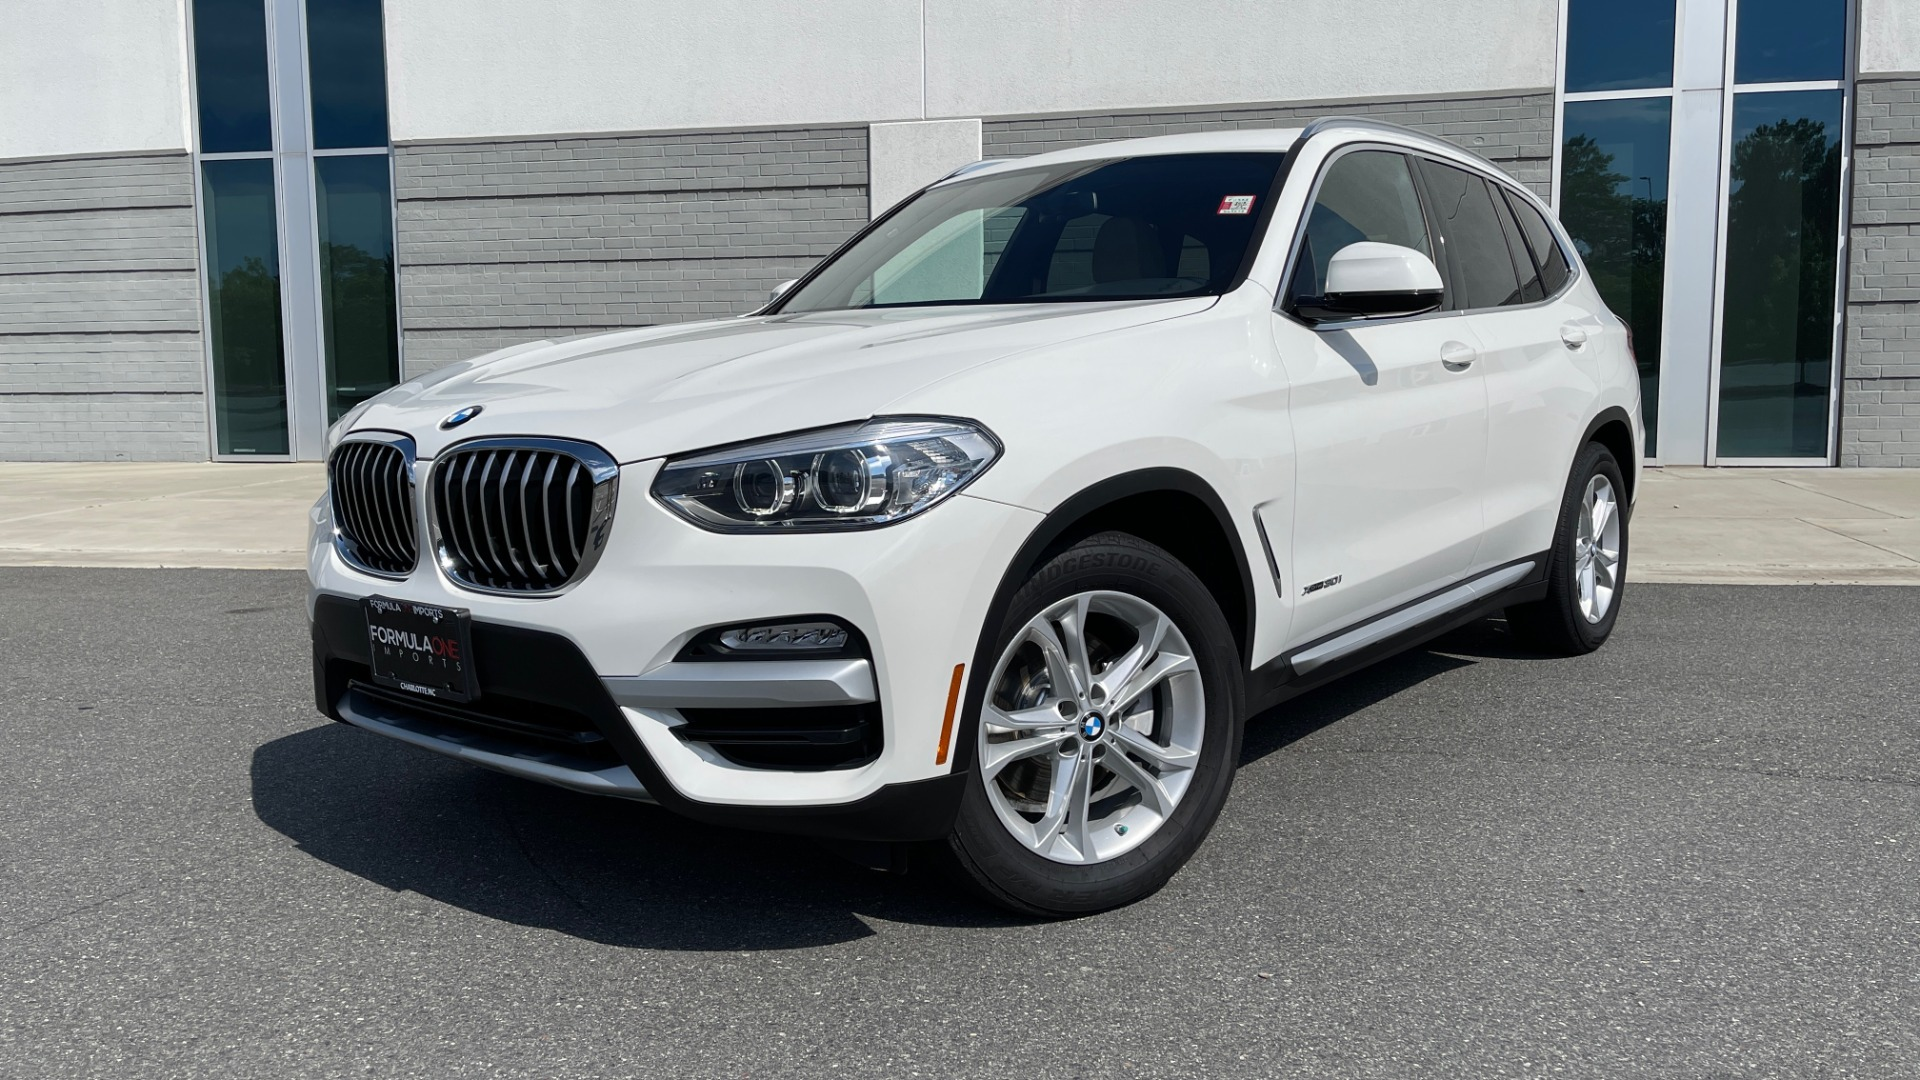 Used 2018 BMW X3 XDRIVE30I CONVENIENCE PKG / HEATED FRONT SEATS / REARVIEW for sale $36,595 at Formula Imports in Charlotte NC 28227 1